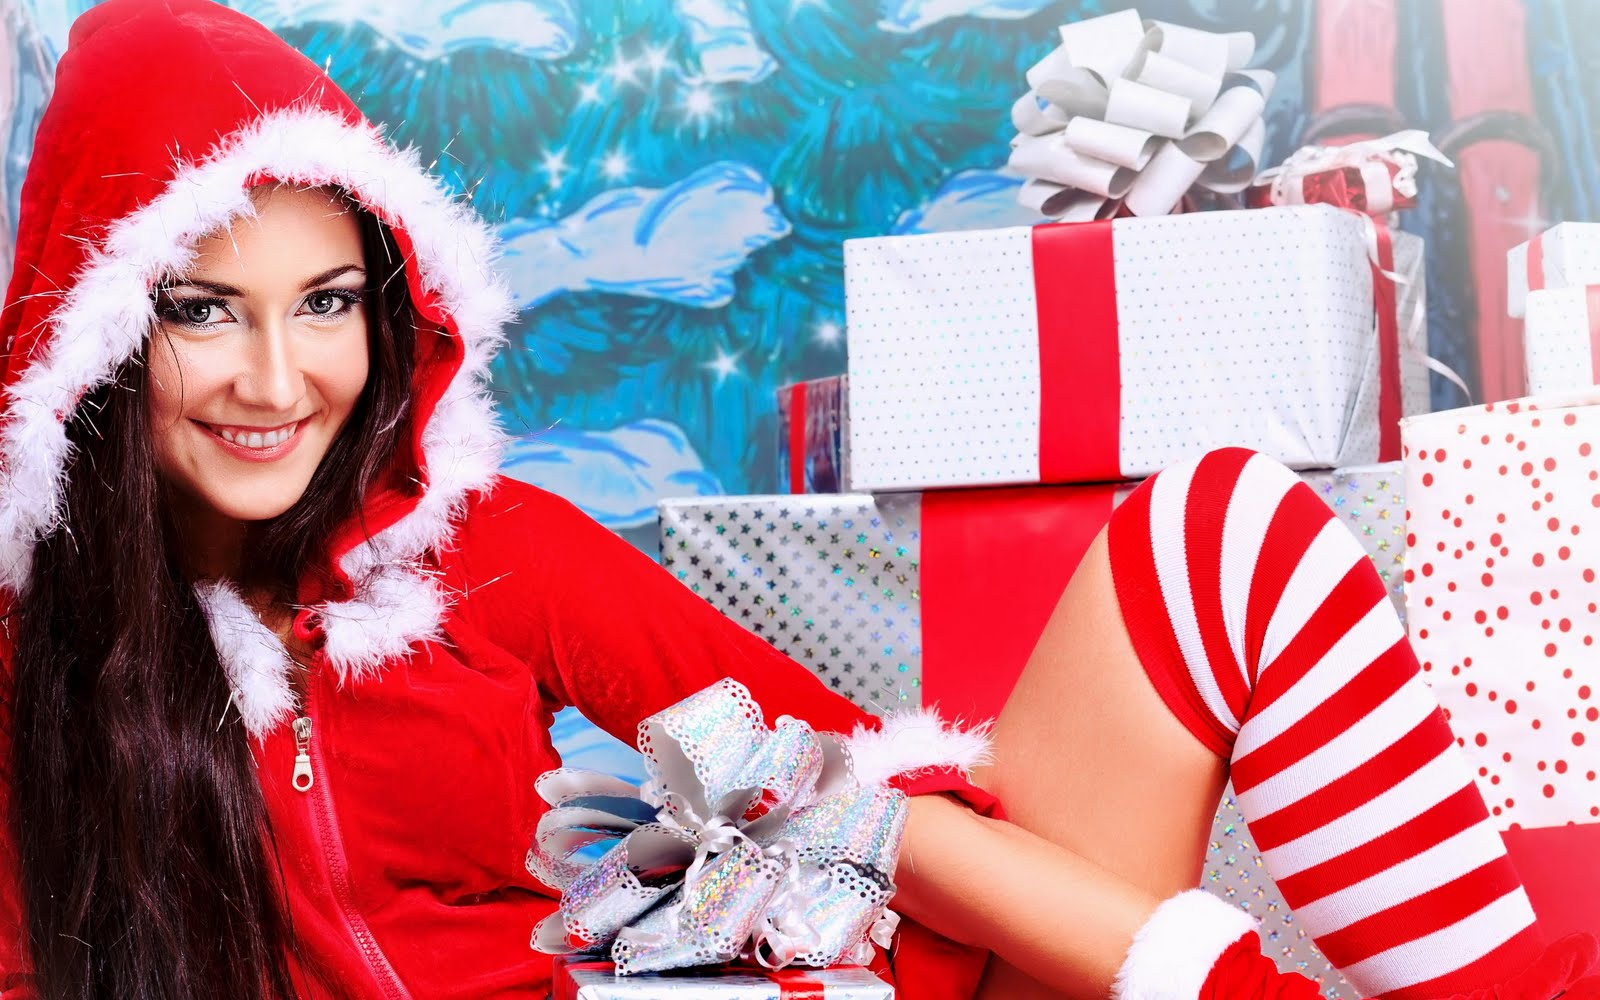 Happy New Year Wallpapers And Merry Christmas Santa Girl Cute Girls